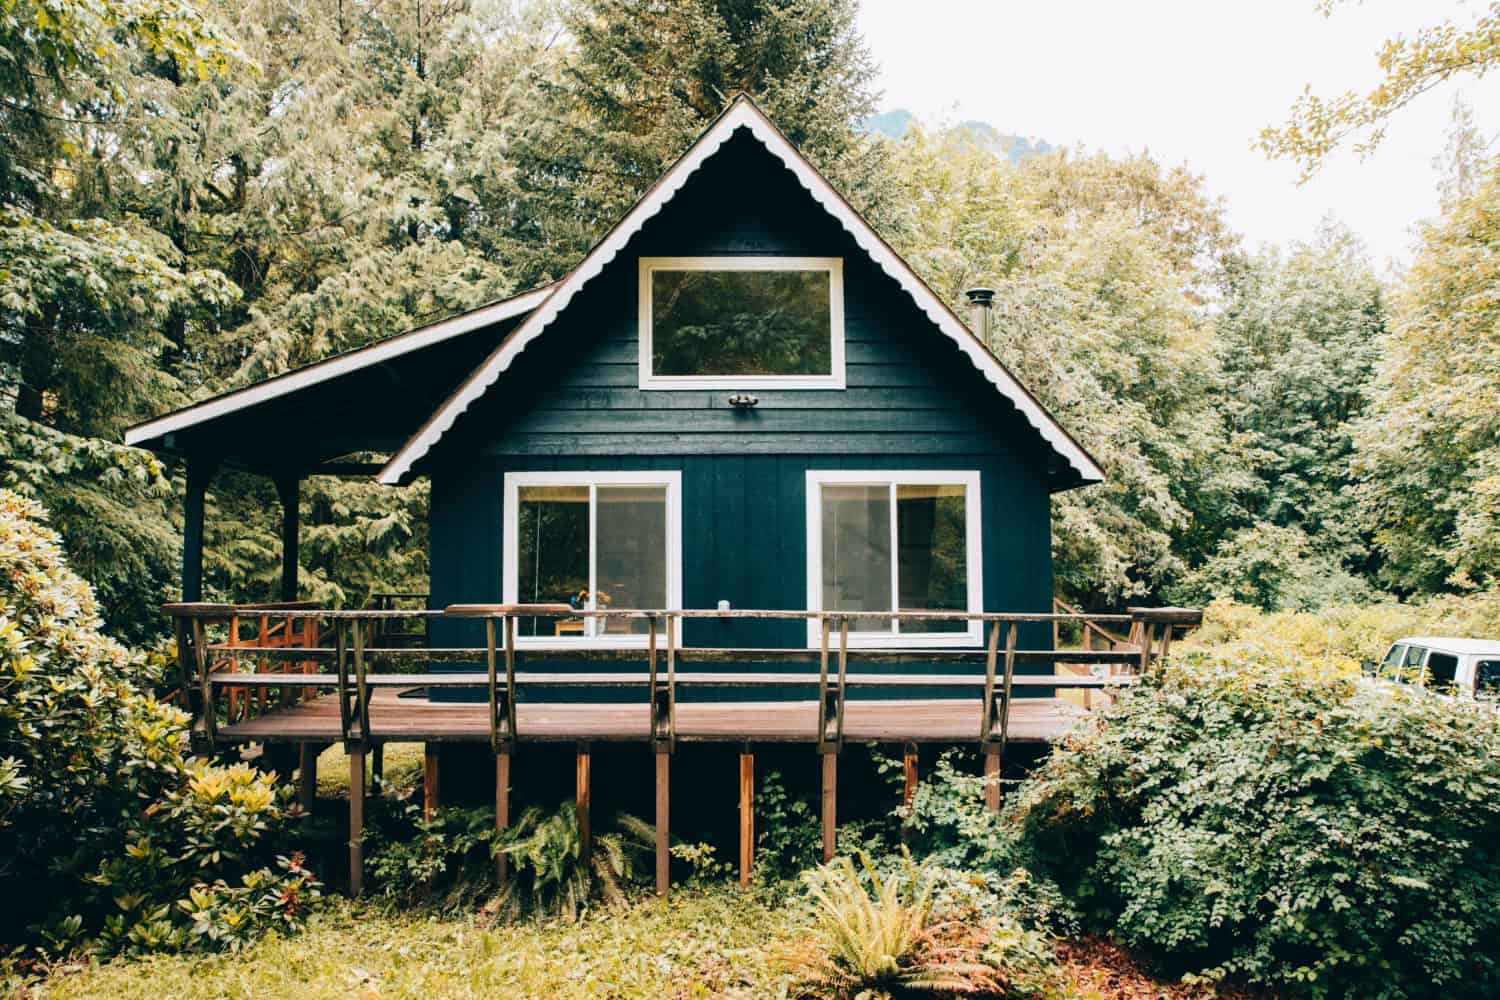 South Fork Cabin - Baring, Washington - TheMandagies.com